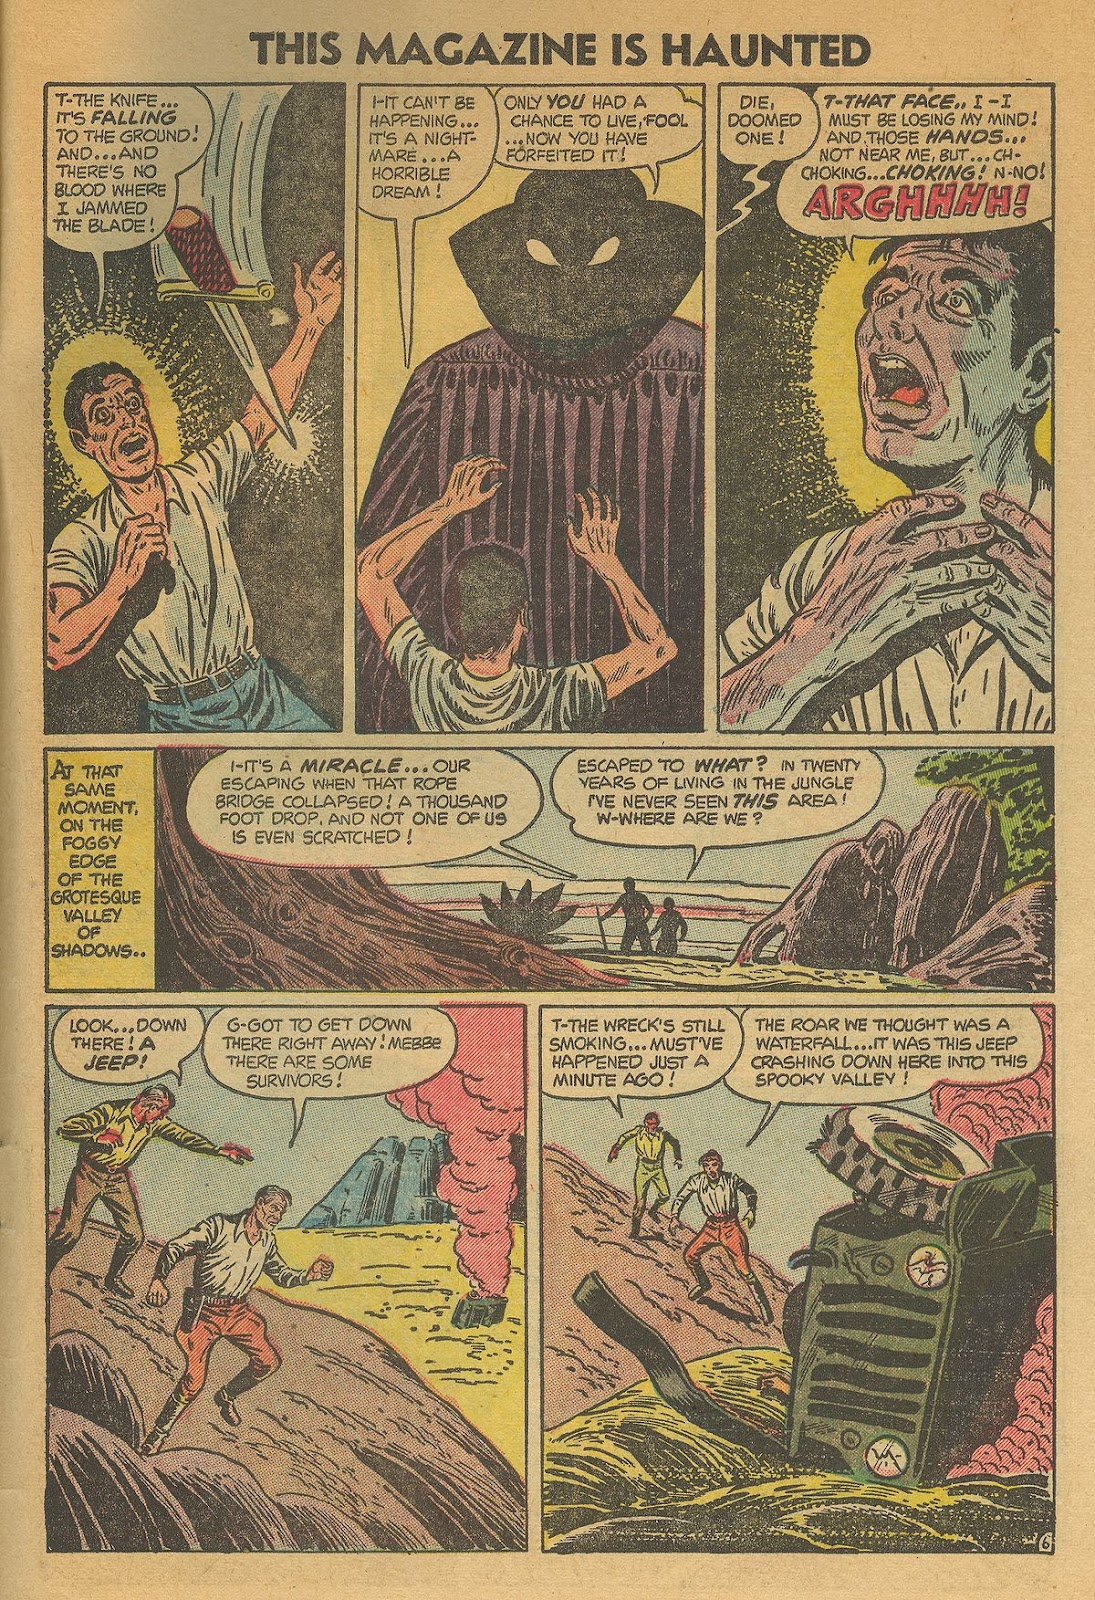 Read online This Magazine Is Haunted comic -  Issue #18 - 31